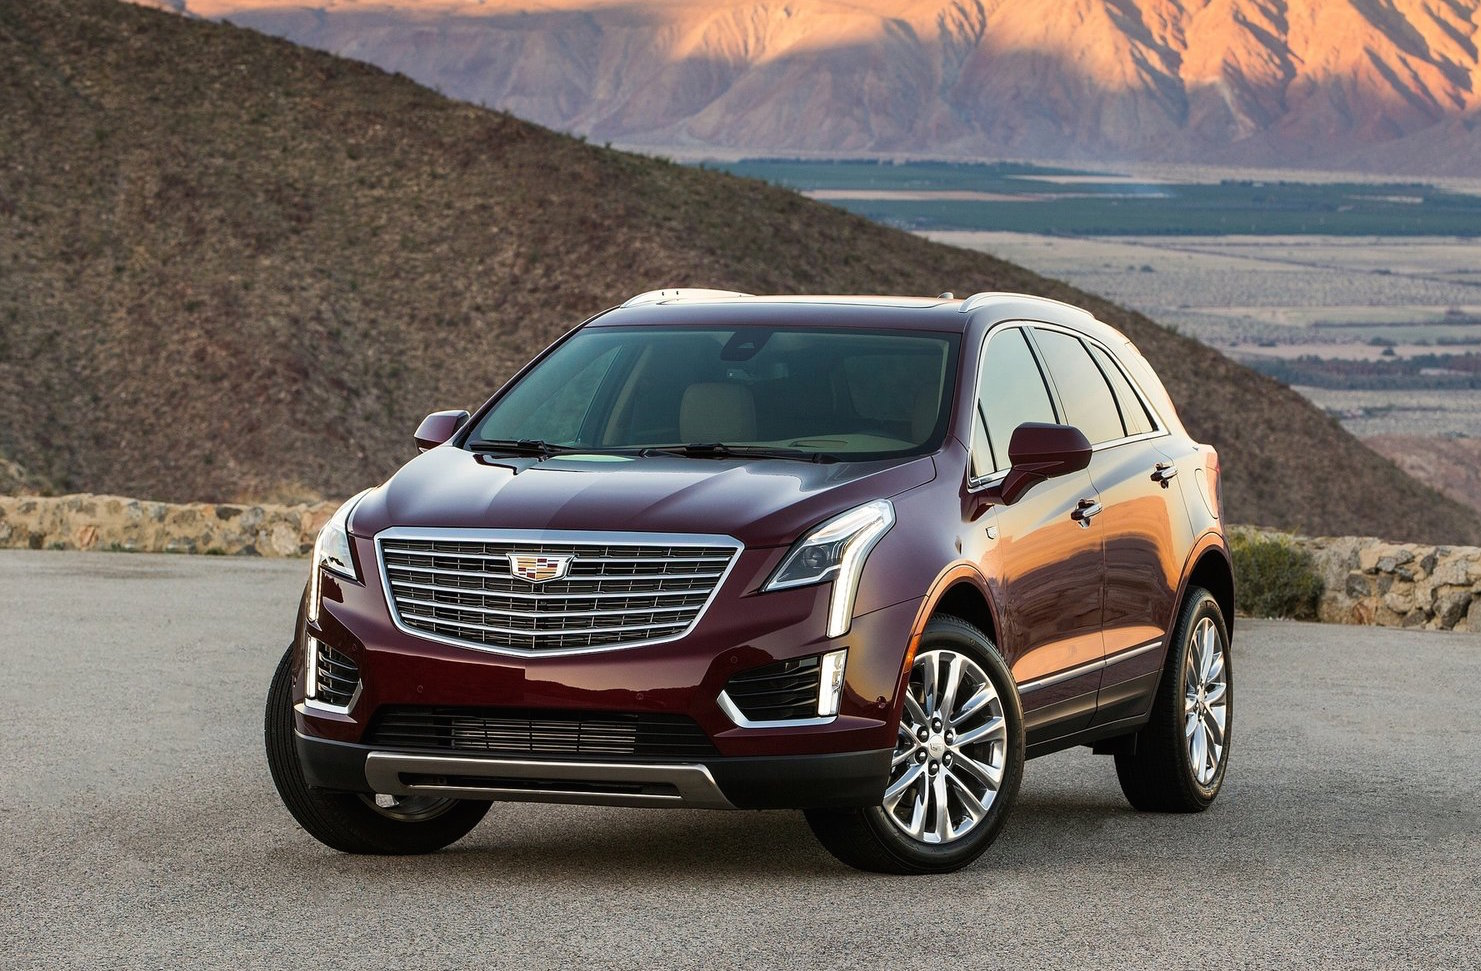 suv small blog kenosha cadillac o sale vehicles for towing capability which wi have